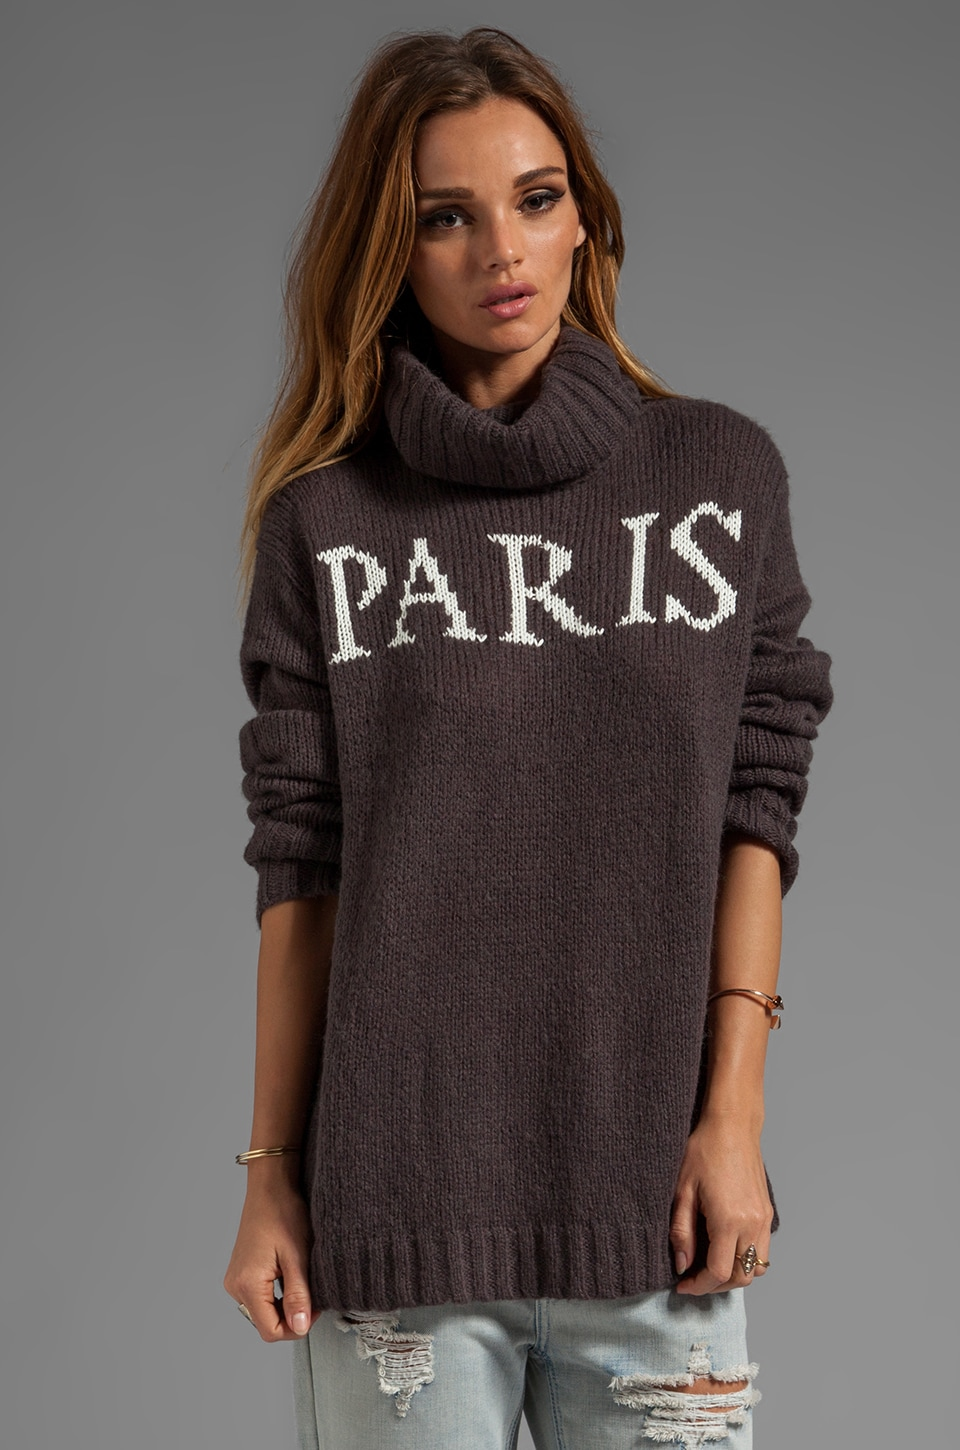 Wildfox Couture White Label Paris Is Home Seatle Sweater in NYC